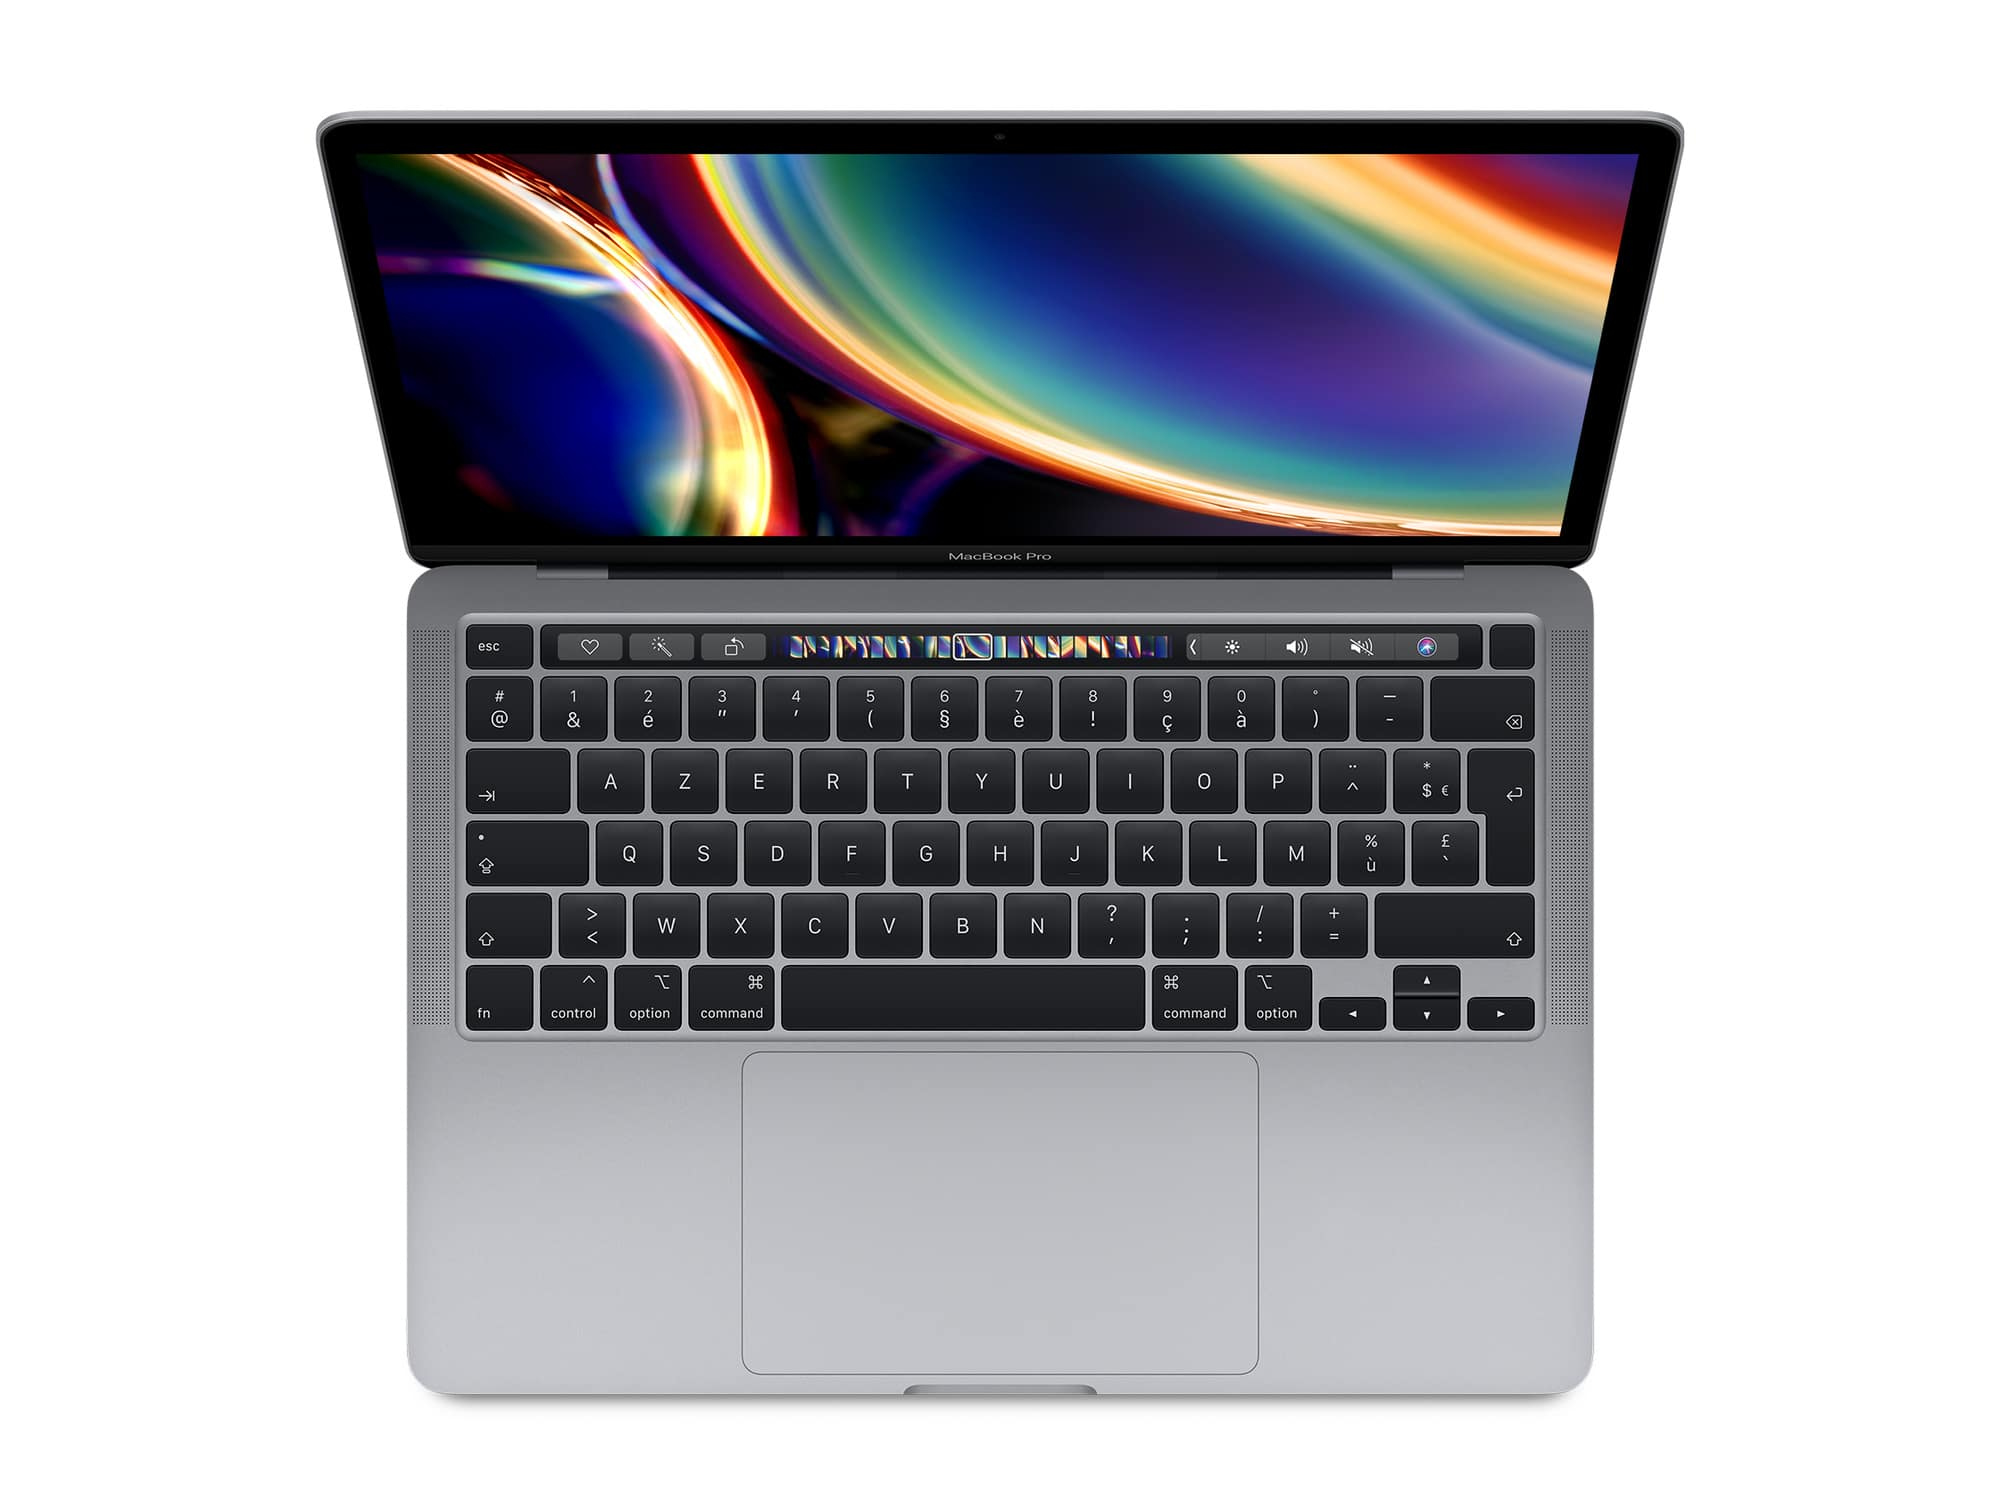 Apple MacBook Pro MacBook Pro für 1.319,00 Euro